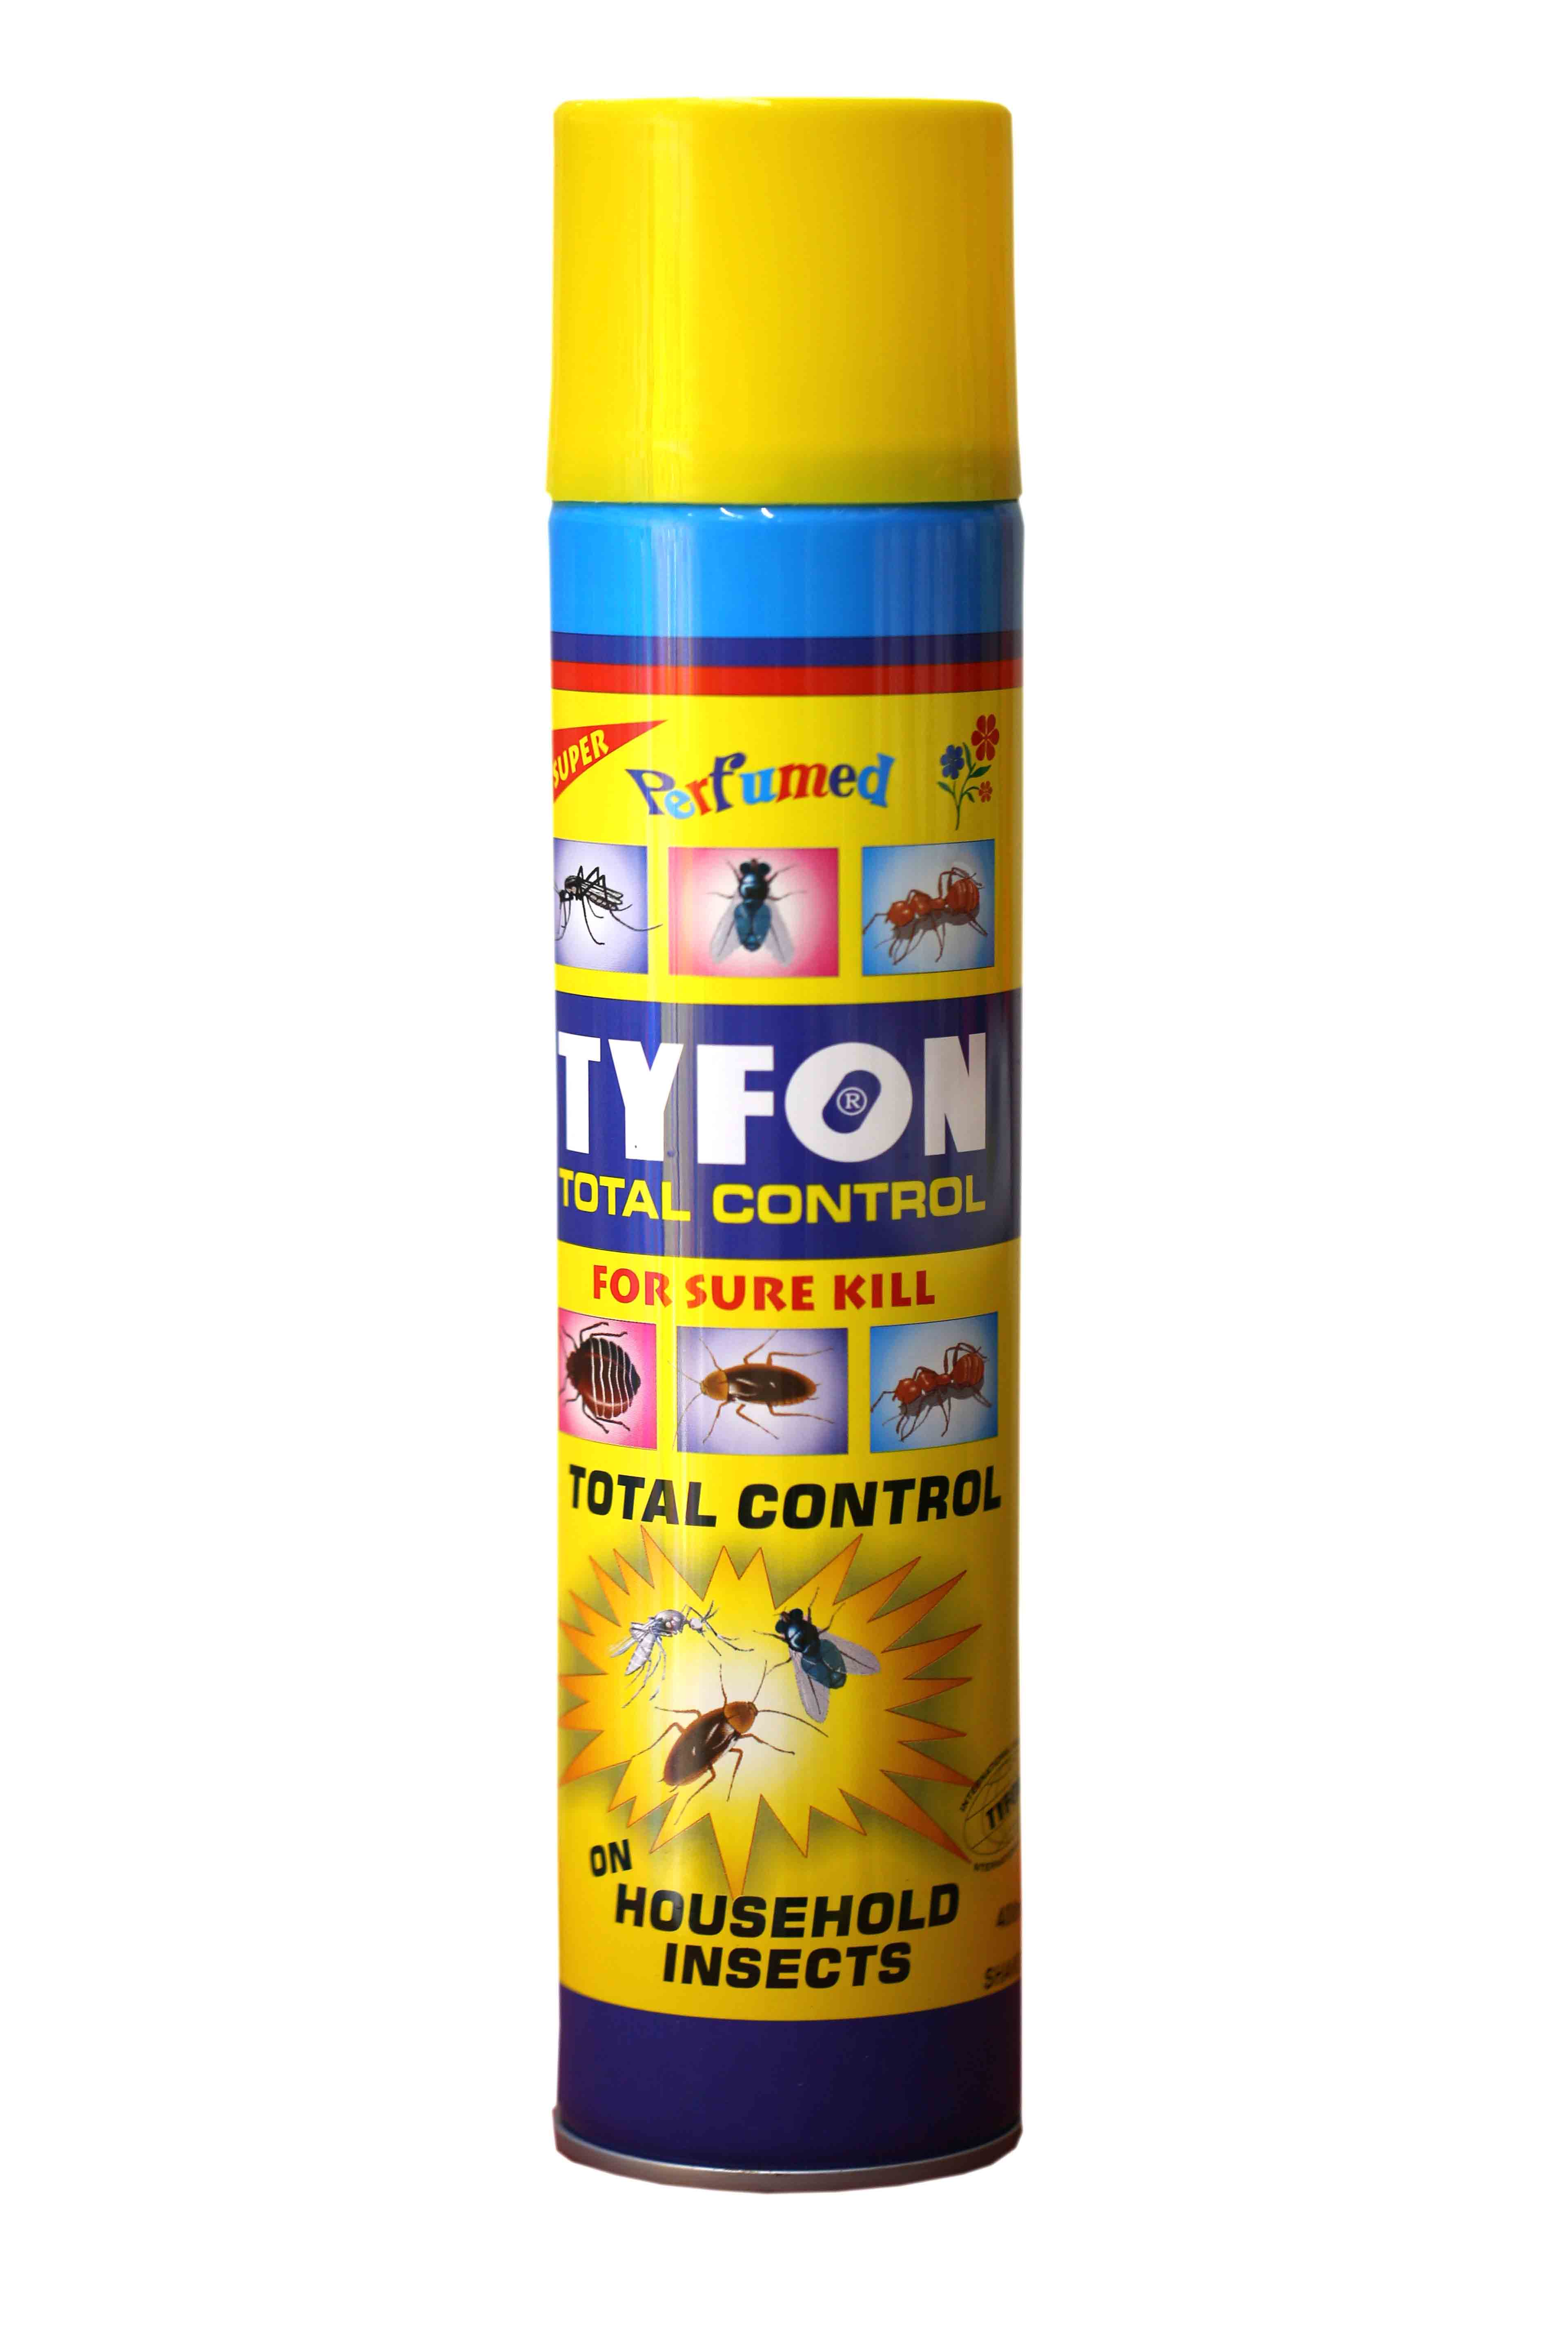 Tyfon Target Aerosol All Insect Killer 500ml